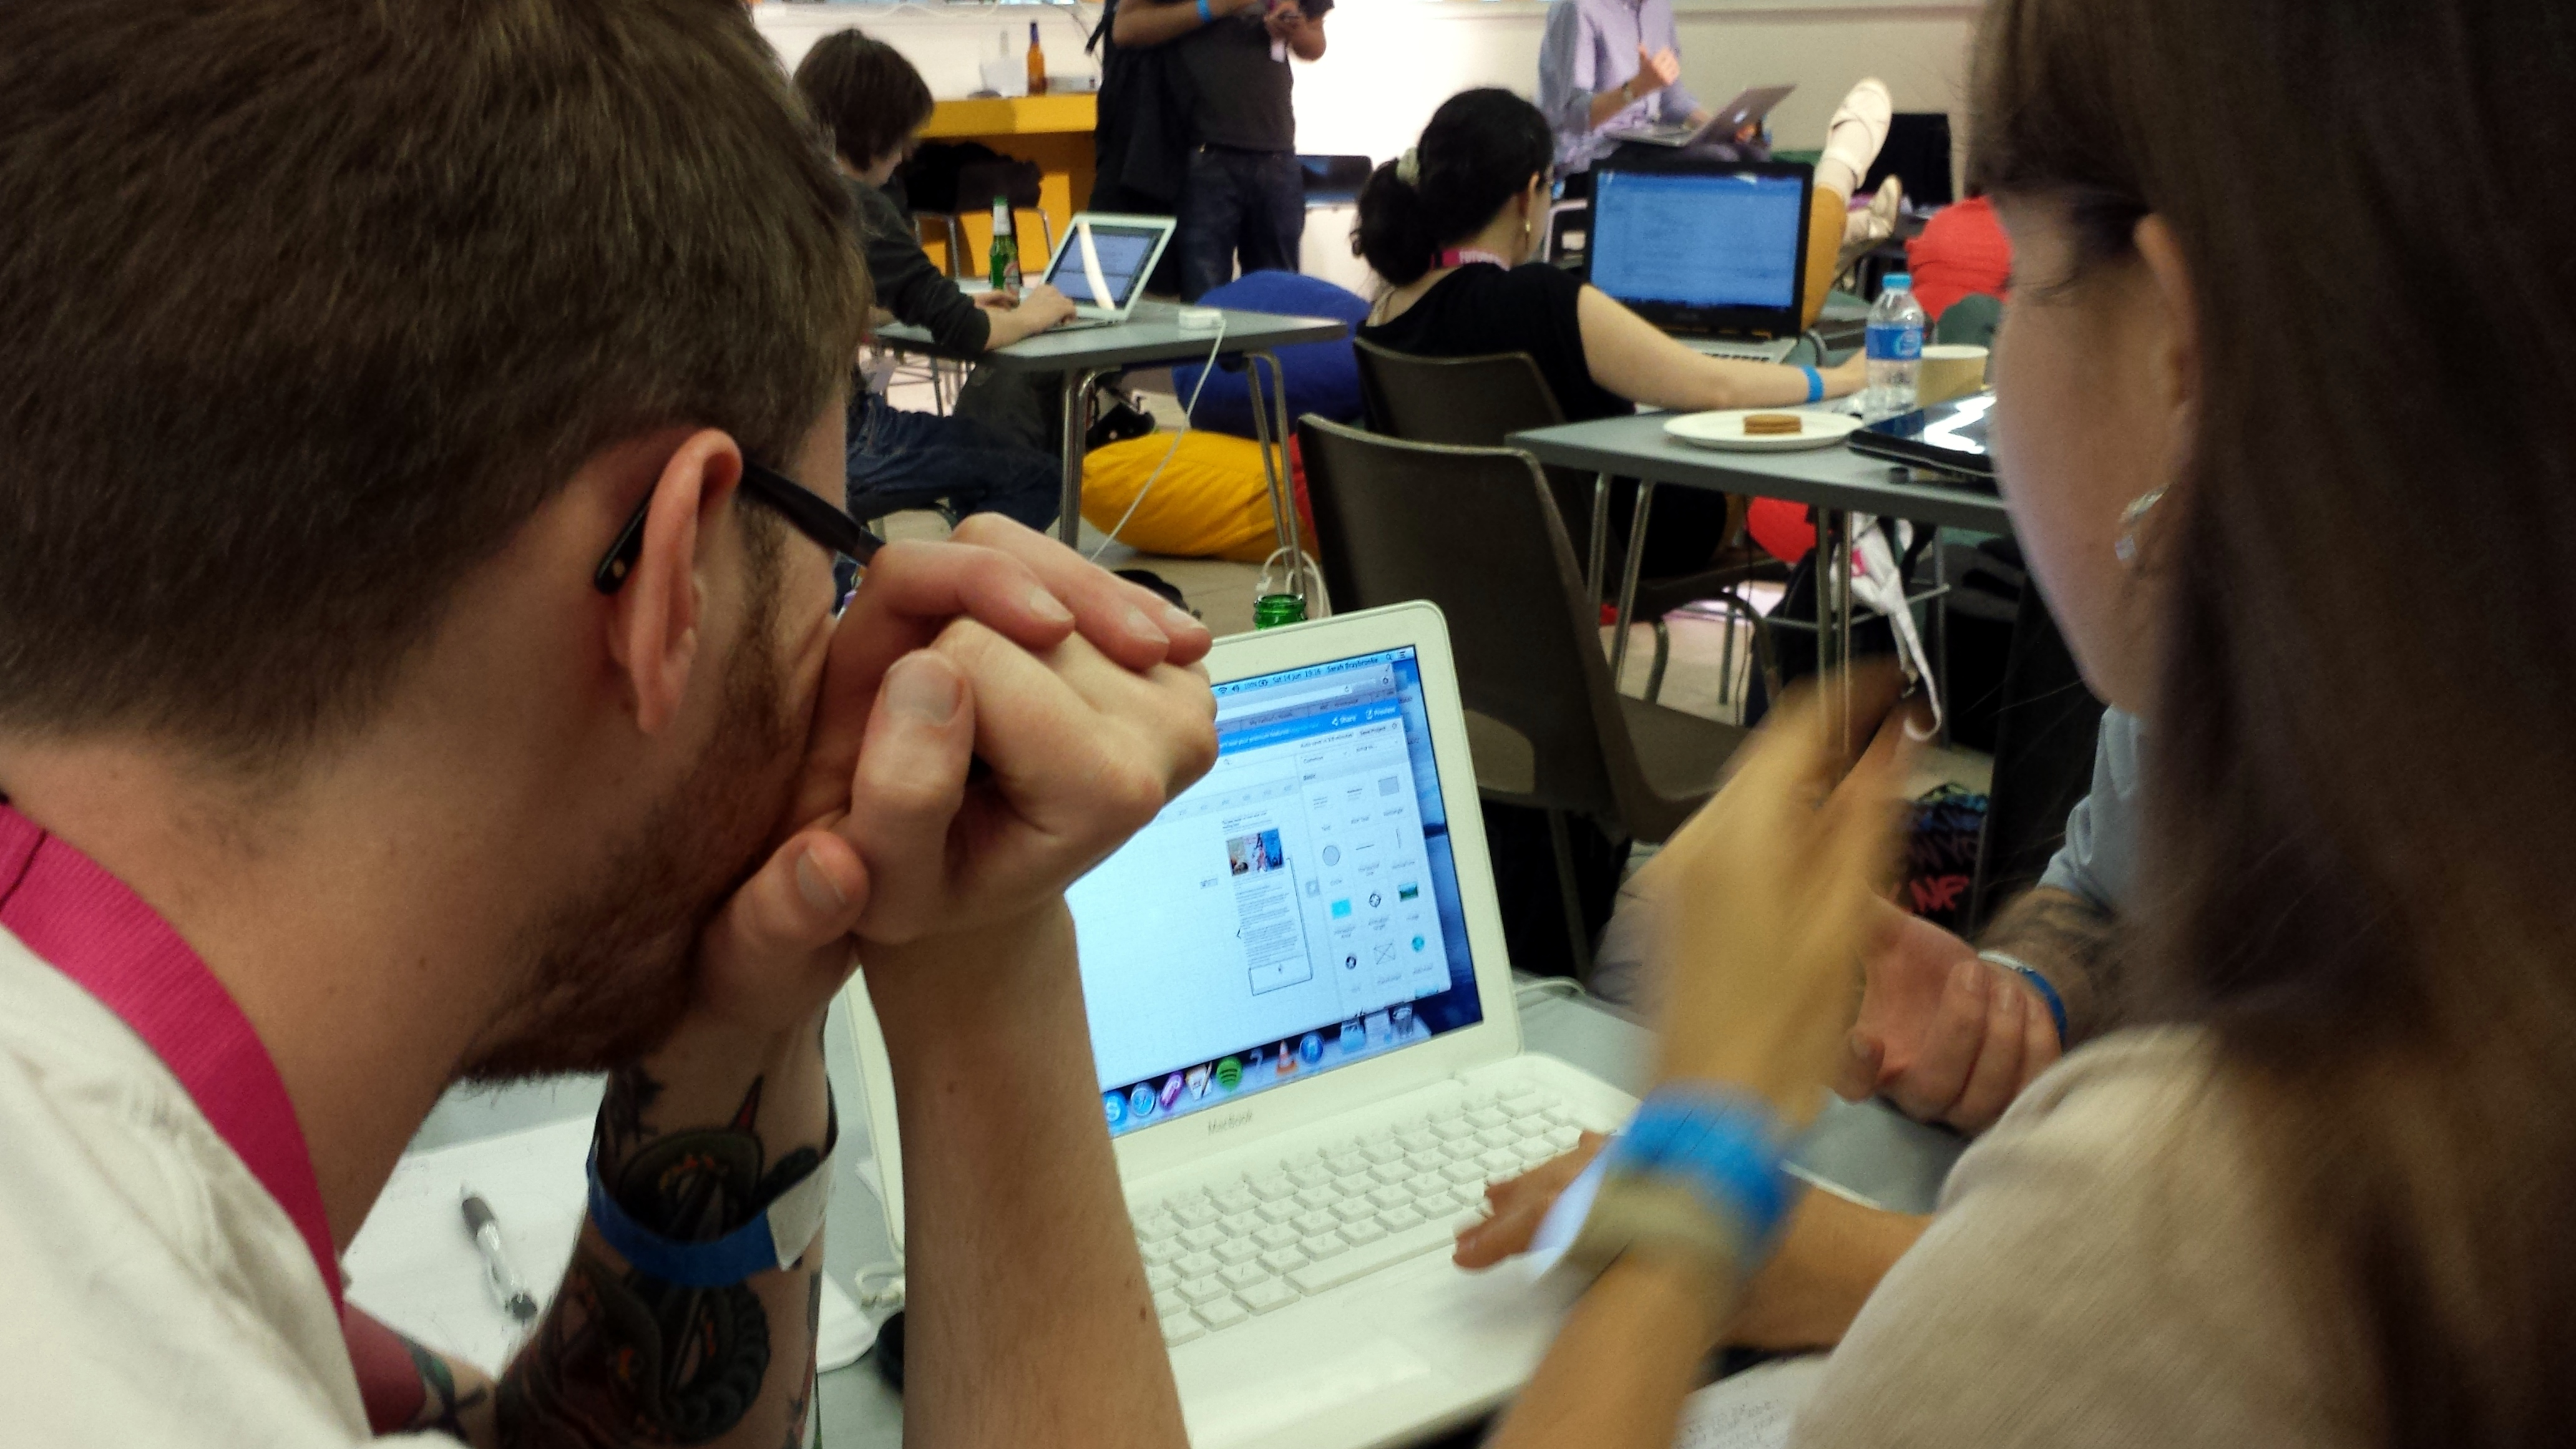 At London's FutureBook Hack. Photo: Porter Anderson